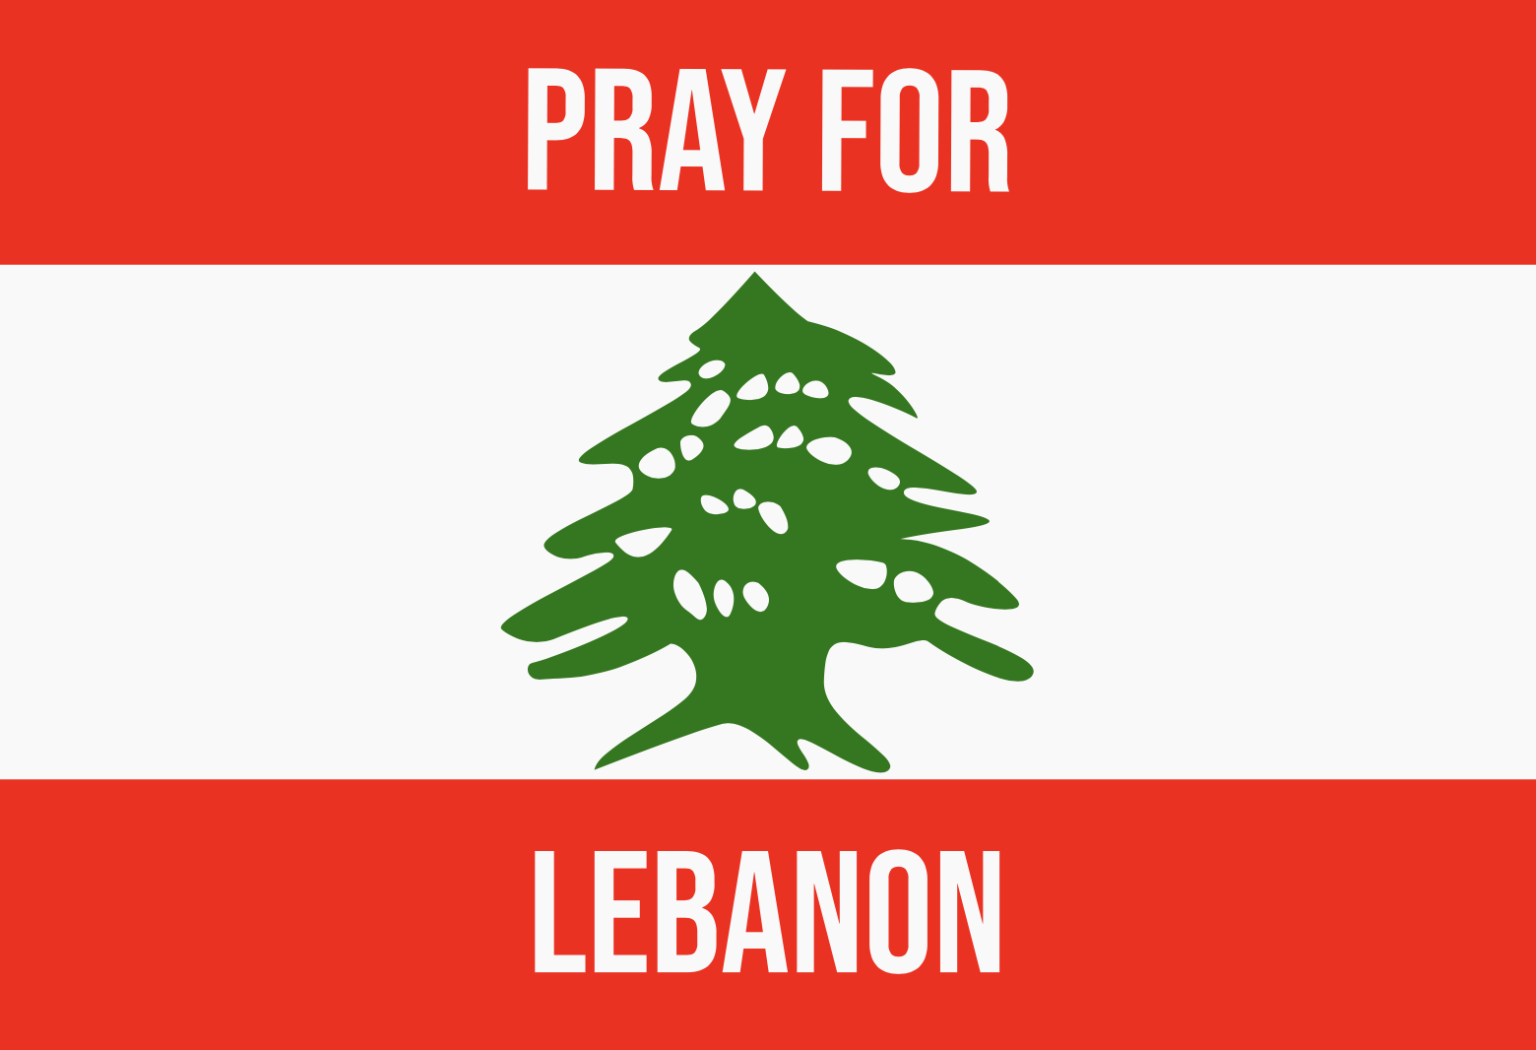 Hezbollah influence troublesome for Lebanon